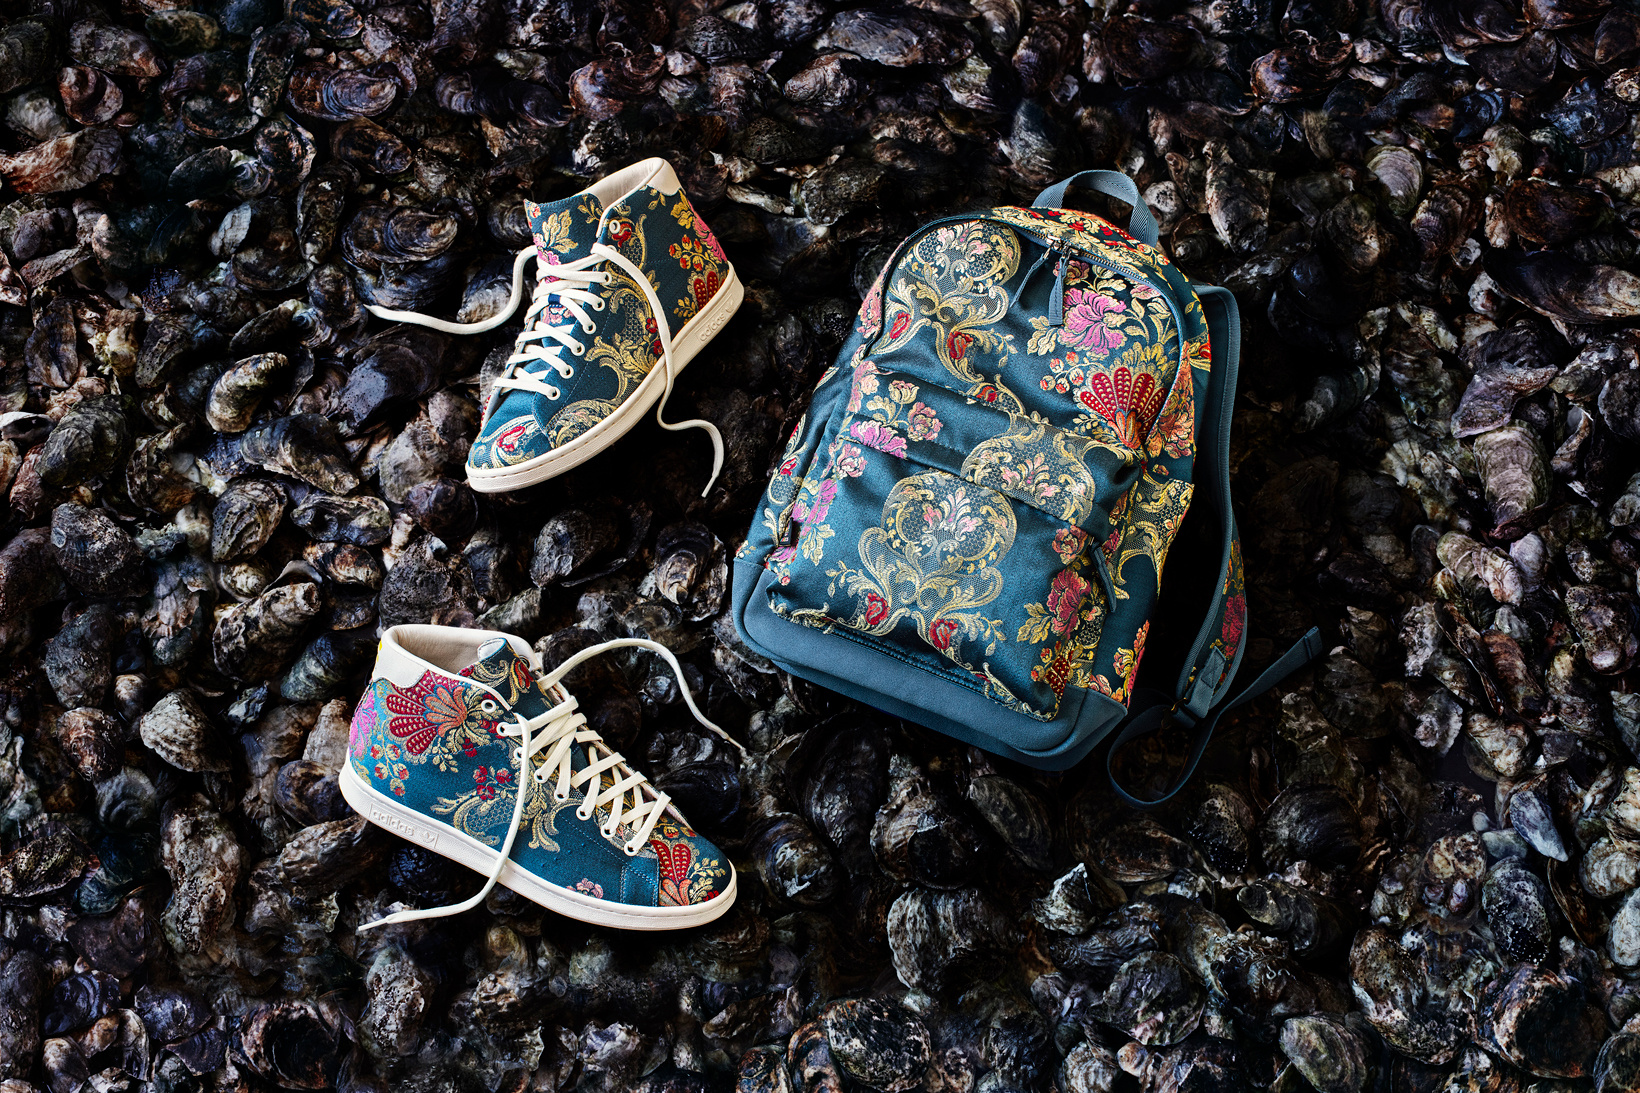 Pharrell Williams et adidas Originals dévoilent le JACQUARD Pack 2.0